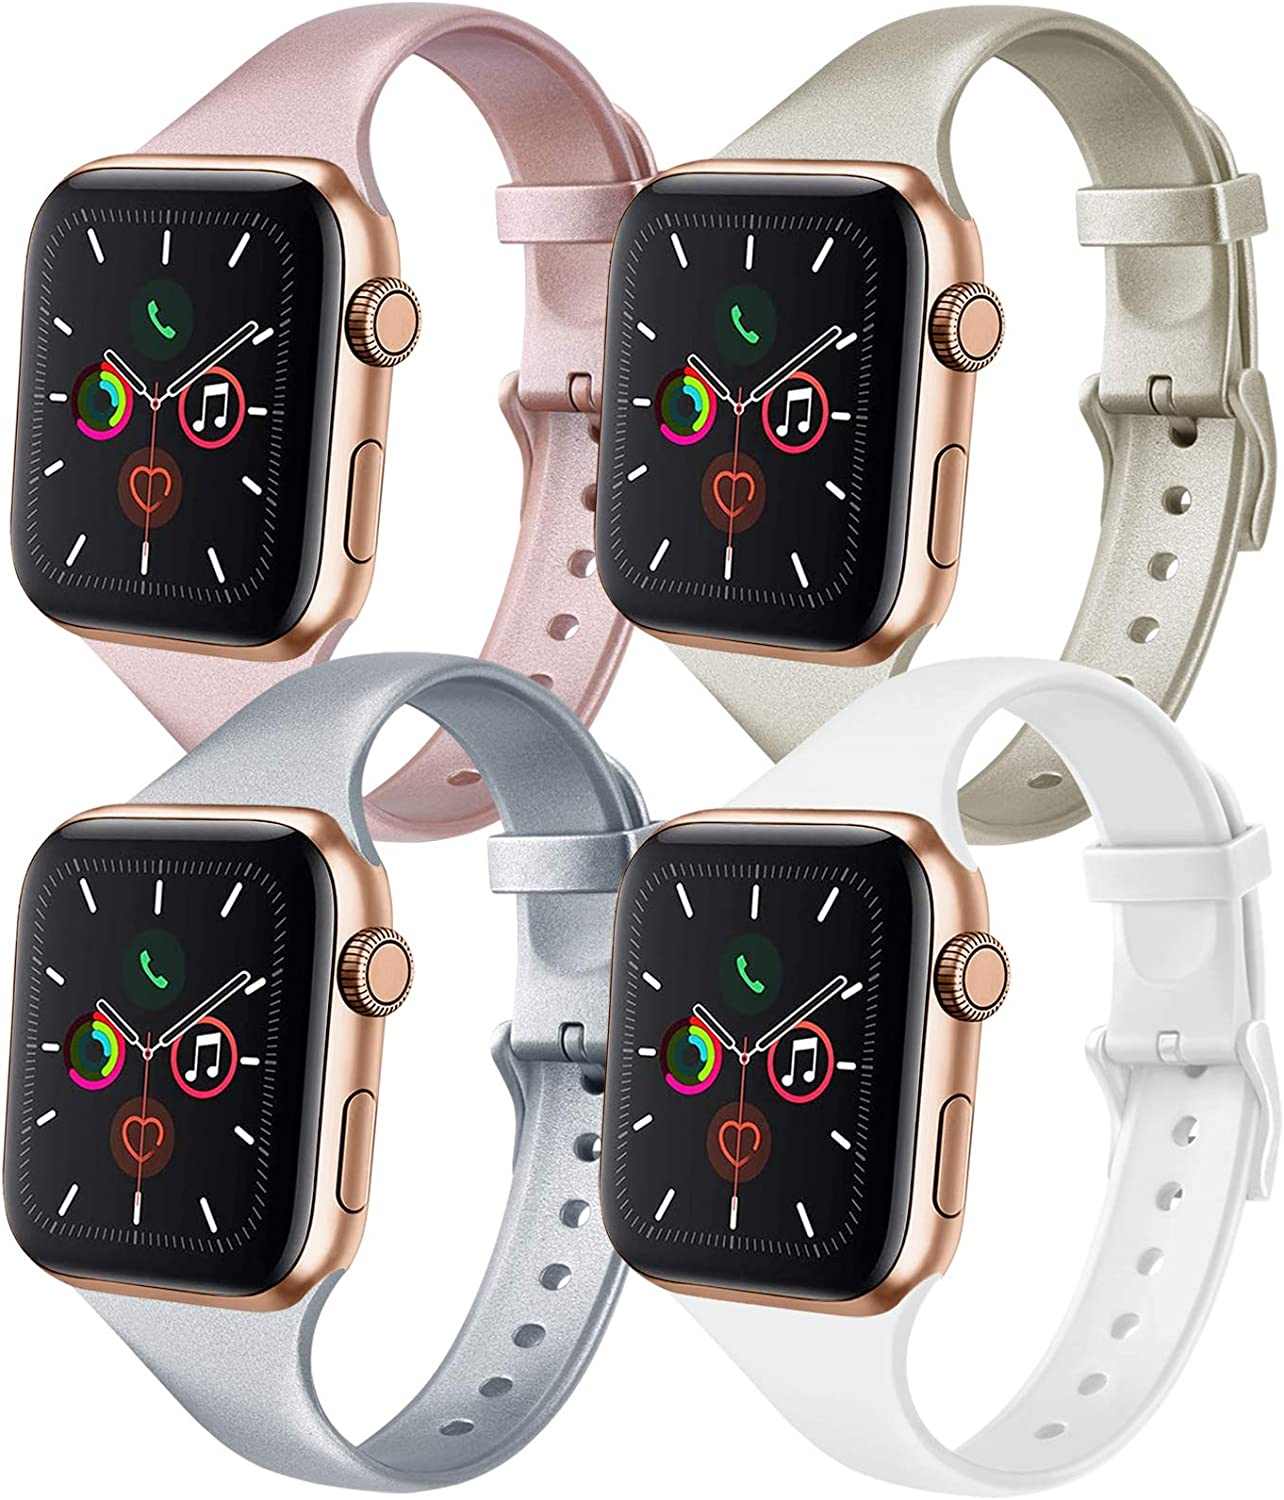 IEOVIEE [Pack 4] Silicone Slim Bands Compatible with Apple Watch Bands 42mm 38mm 44mm 40mm Series 6 5 4 3 & SE, Narrow Replacement Wristbands (Rose Gold/Champagne/Silver/White, 38mm/40mm M/L)